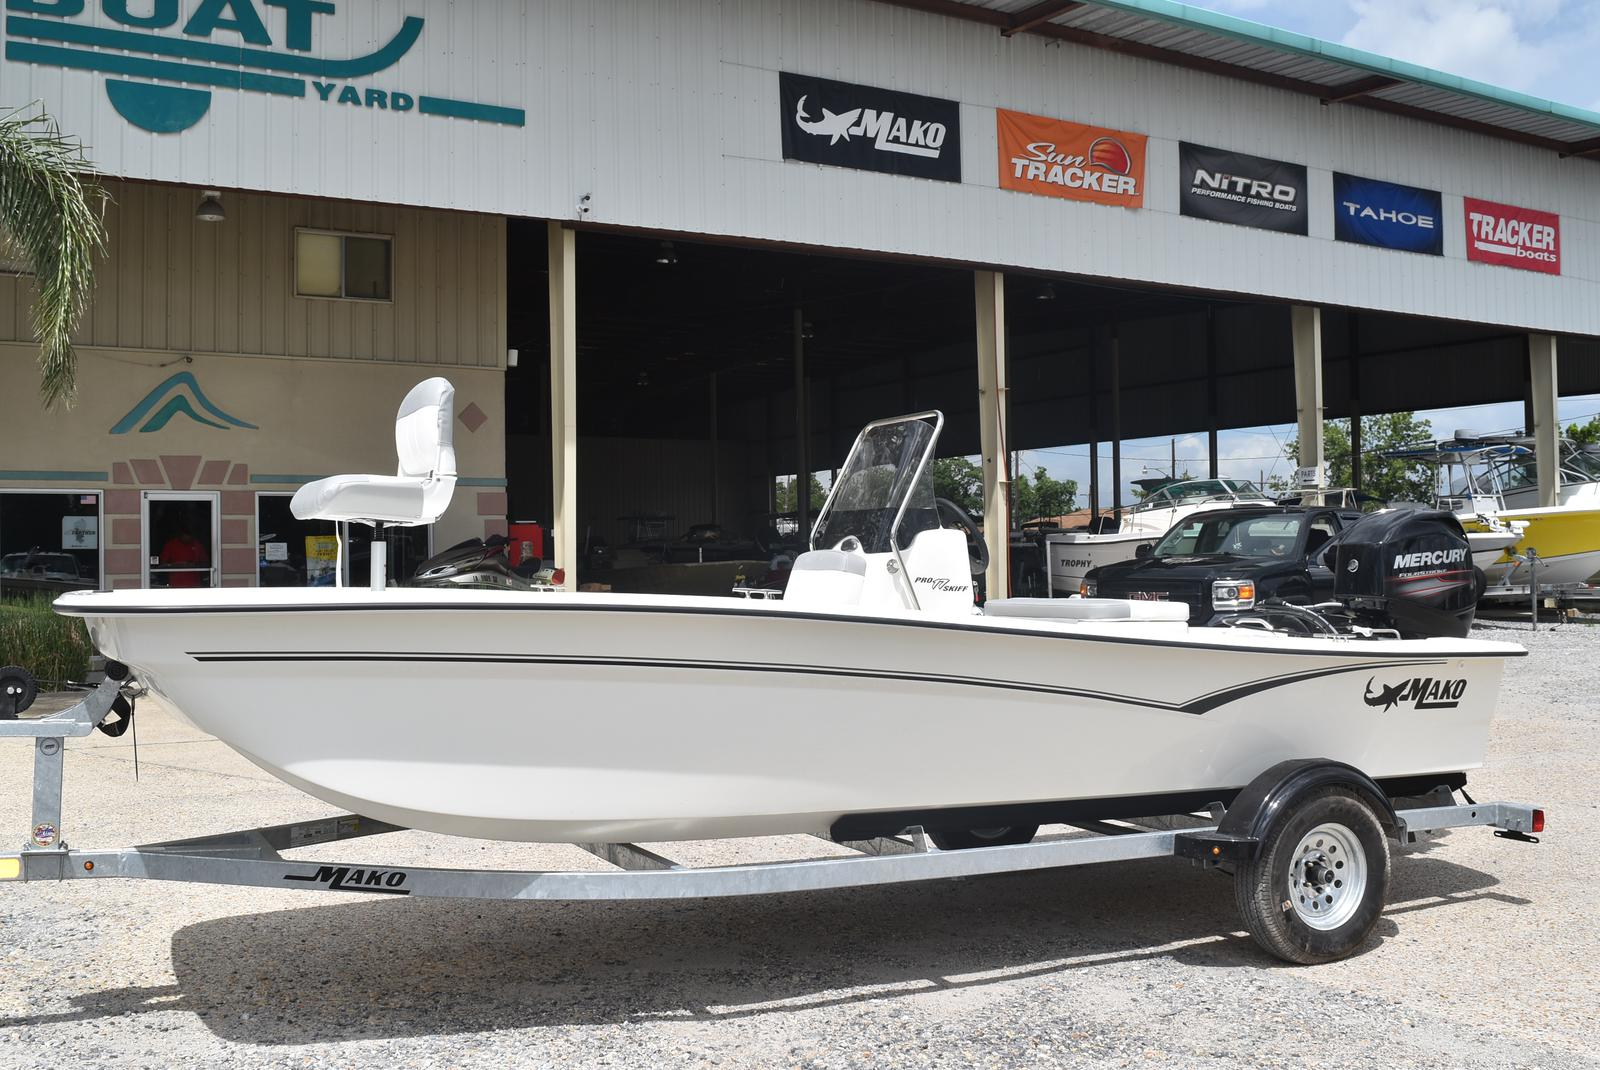 2020 Mako boat for sale, model of the boat is Pro Skiff 17, 75 ELPT & Image # 115 of 702